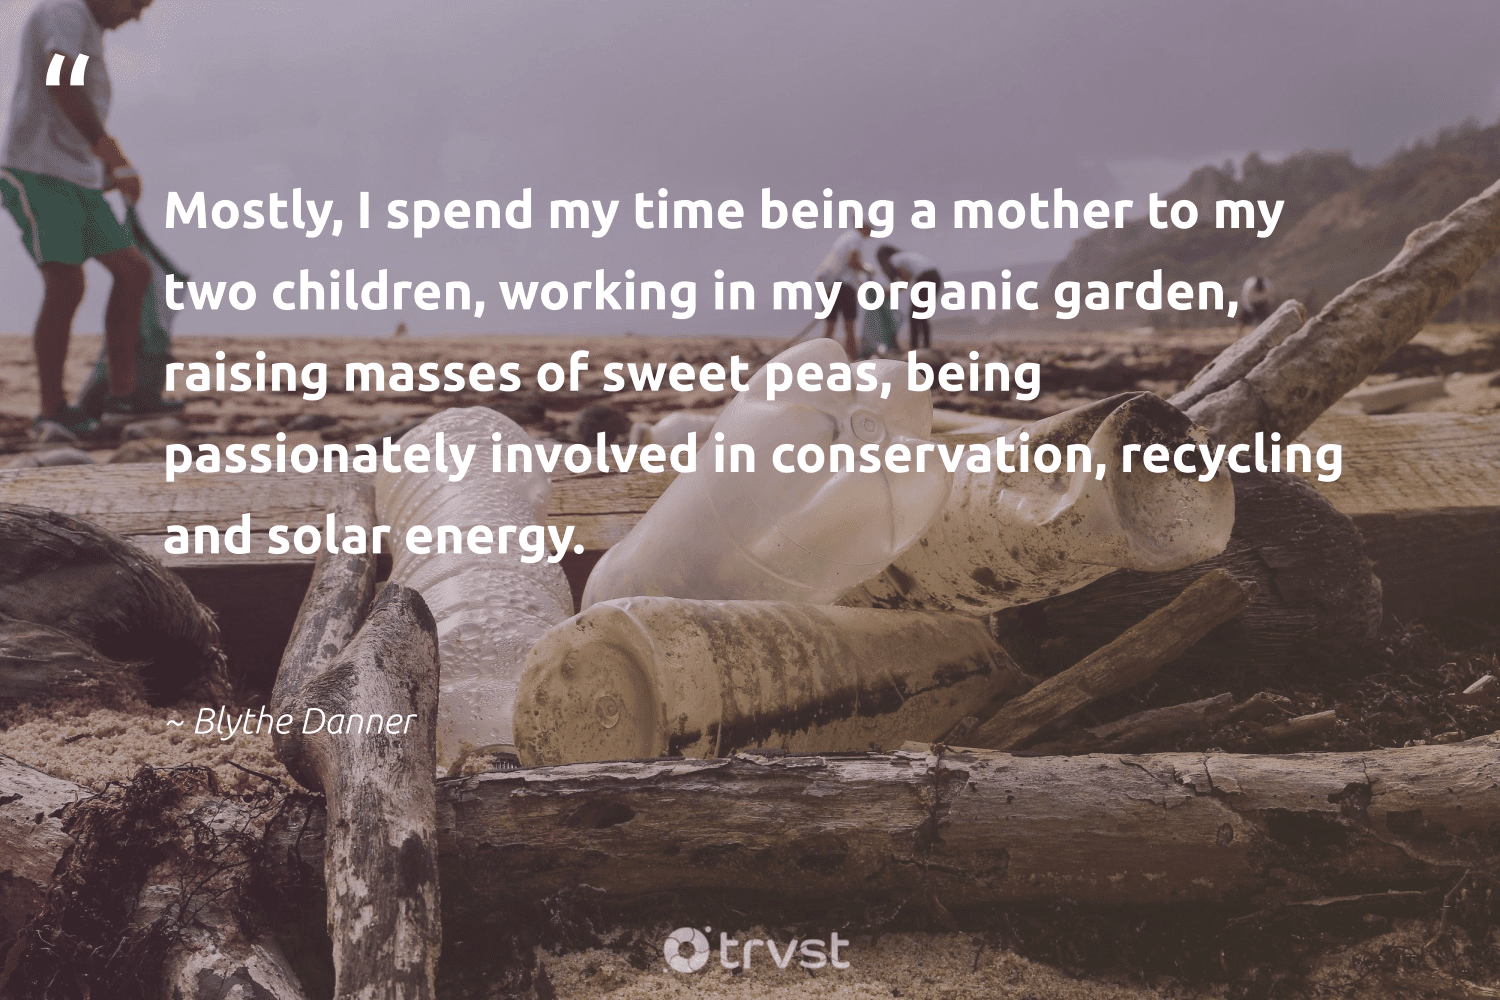 """""""Mostly, I spend my time being a mother to my two children, working in my organic garden, raising masses of sweet peas, being passionately involved in conservation, recycling and solar energy.""""  - Blythe Danner #trvst #quotes #recycling #energy #solar #solarenergy #conservation #children #organic #solarfuture #recycle #noplanetb"""